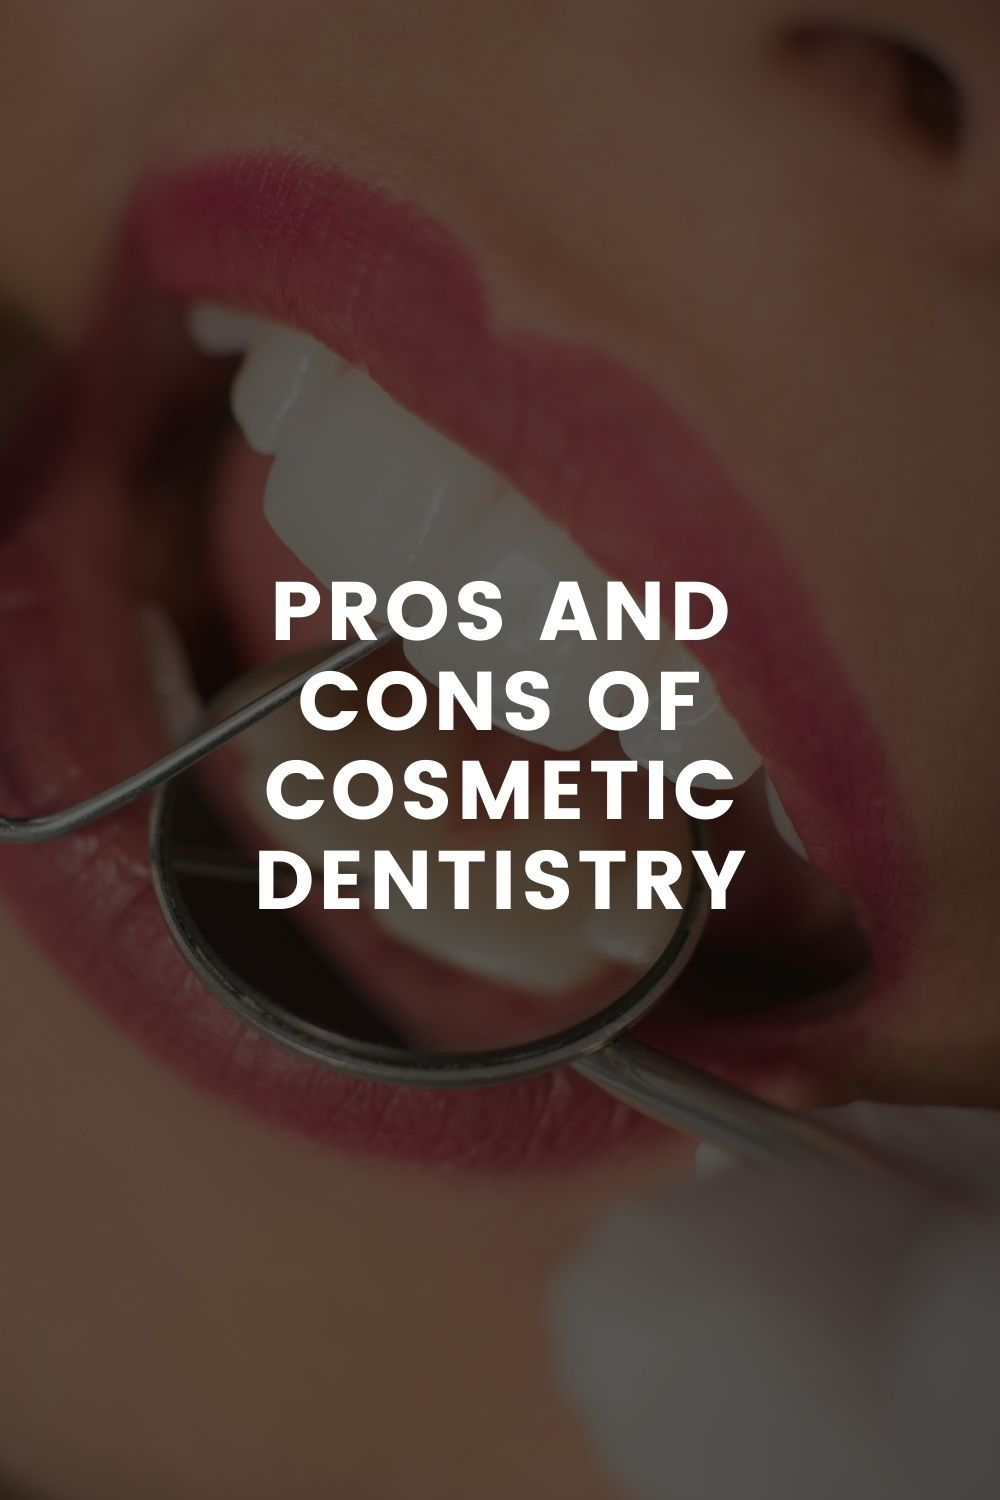 Pros and Cons of Cosmetic Dentistry